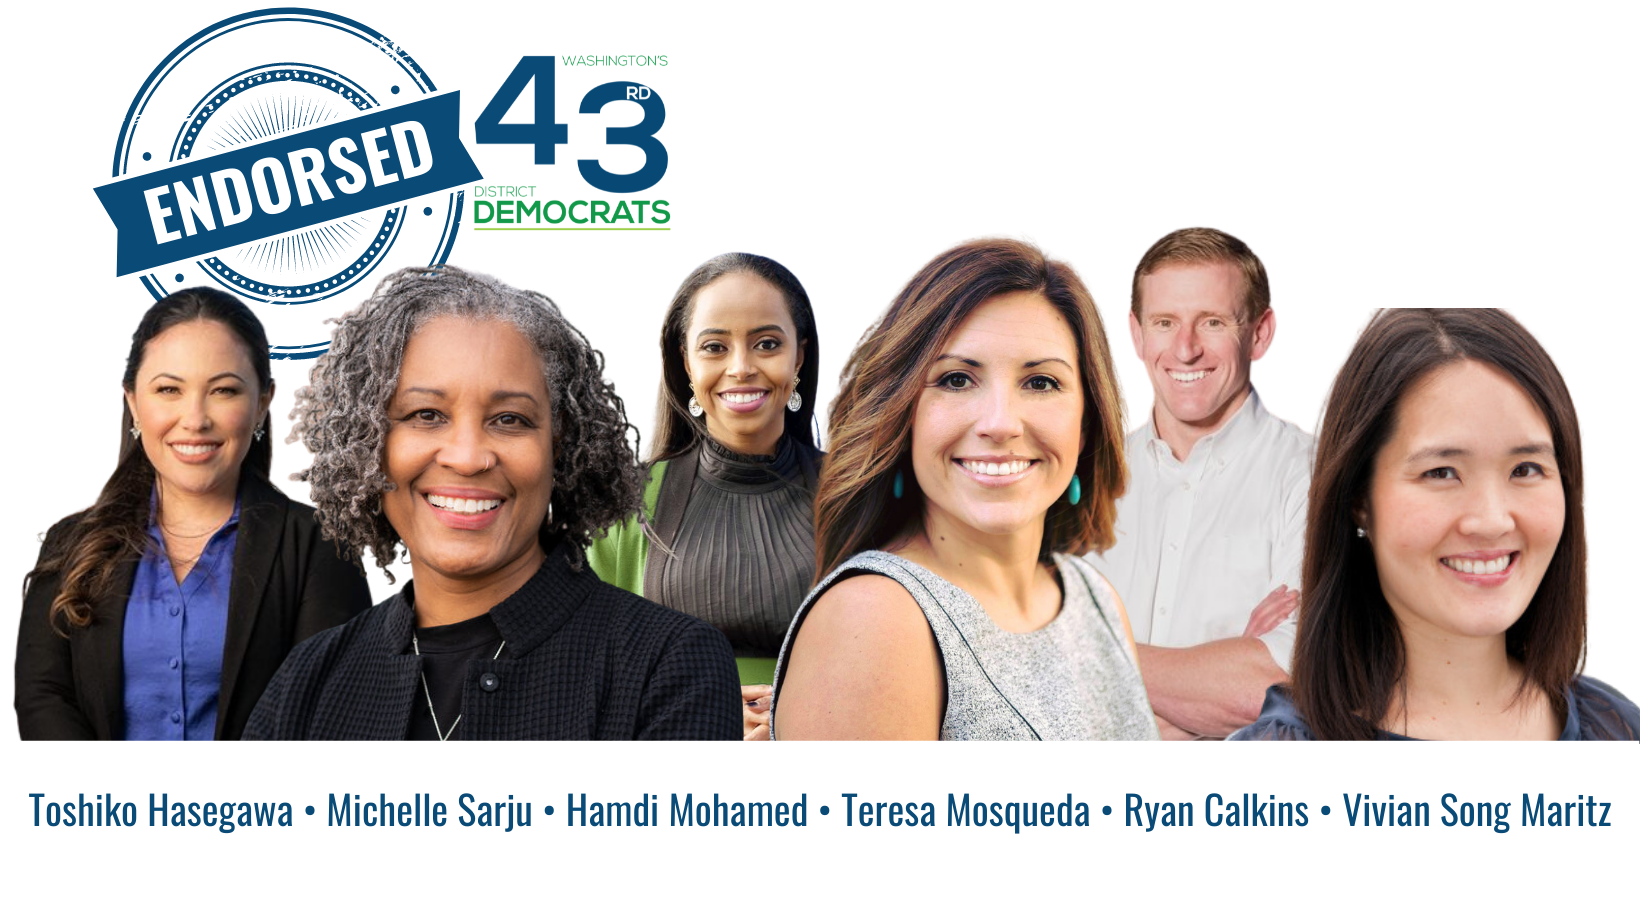 The 43rd's endorsed canddiates: Toshiko Hasegawa, Michelle Sarju, Hamdi Mohamed, Teresa Mosqueda, Ryan Calkins, and Vivian Song Maritz. Their names are listed at the bottom of the graphic in blue.